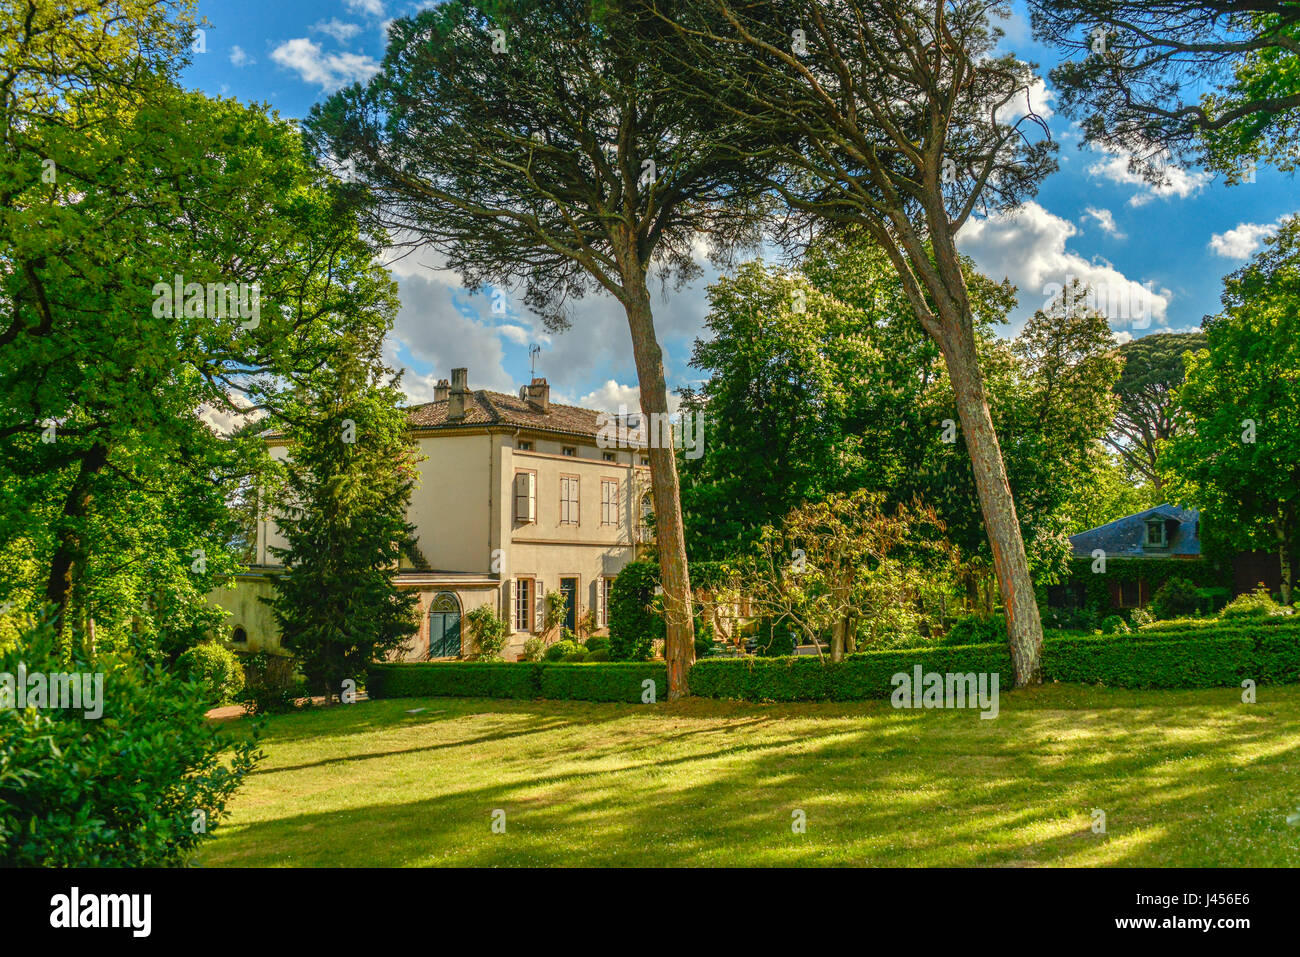 Chateau de Saurs, near Lisle sur Tarn, in Occitanie, France. - Stock Image